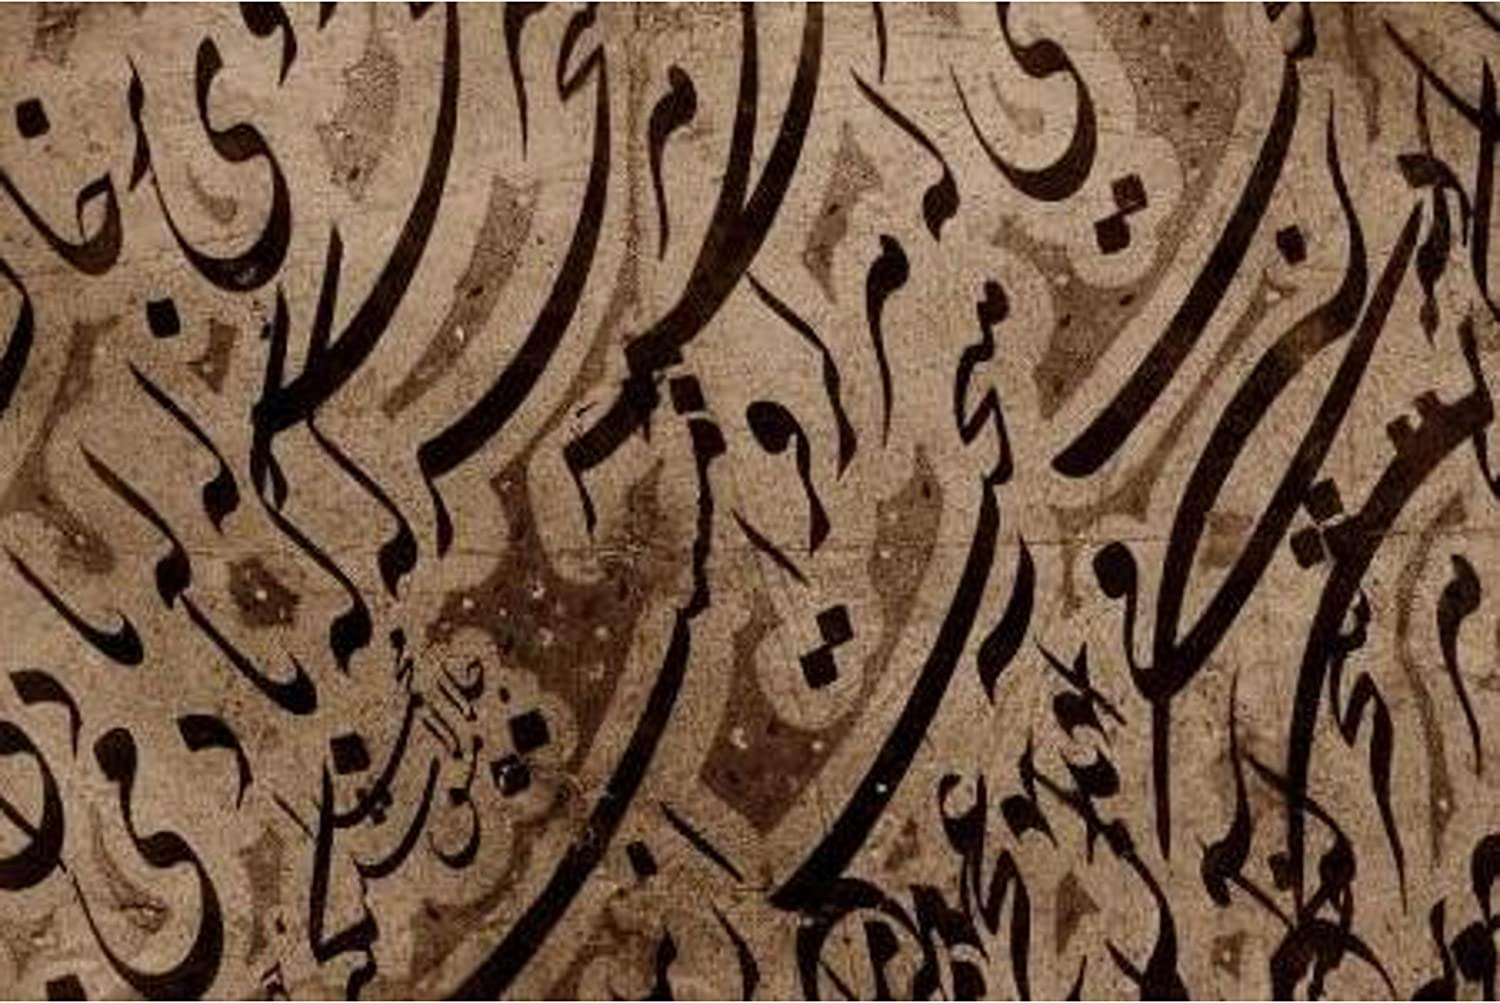 Amazon.com: Calligraphy Exercises (Detail) by Mir Emad Hassani ...